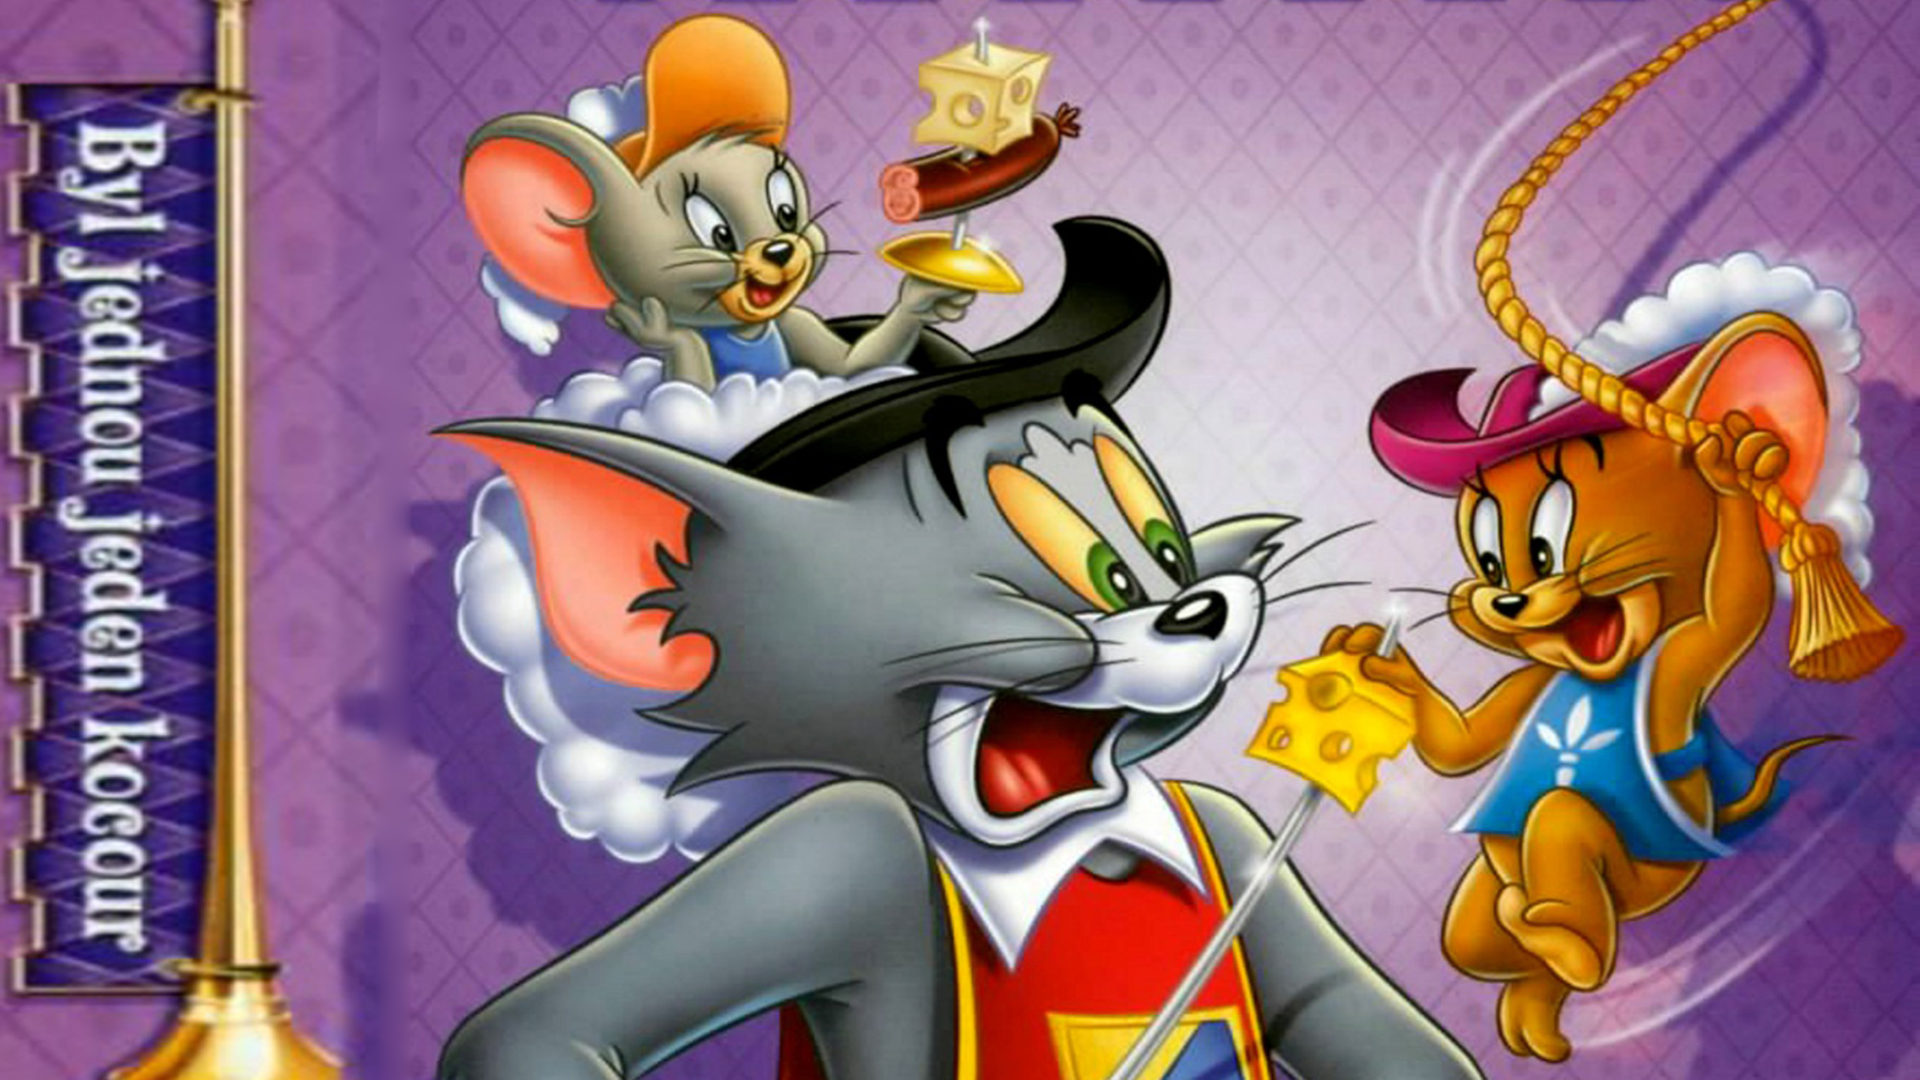 Anime Magic Wallpaper Tom Jerry Once Upon A Tomcat Wallpapers Hd 2560x1600